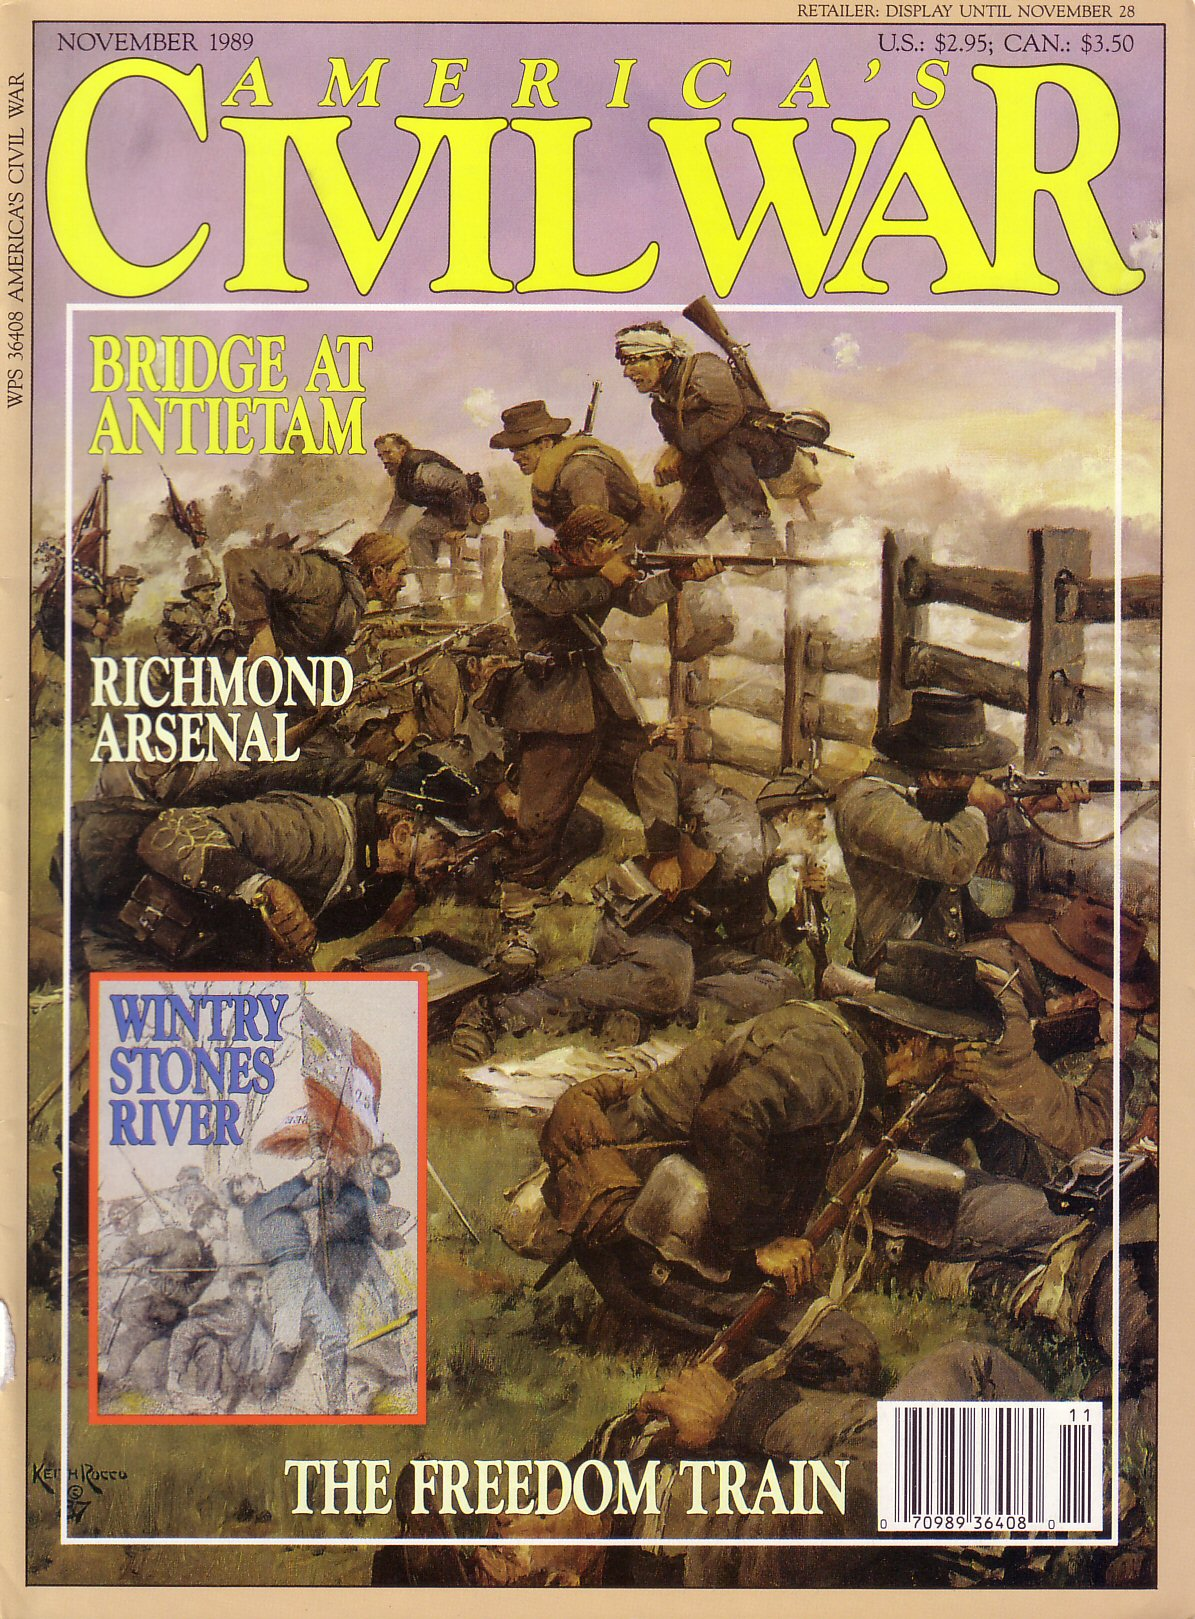 Americas Civil War, Volume 2, Number 4 (November 1989)